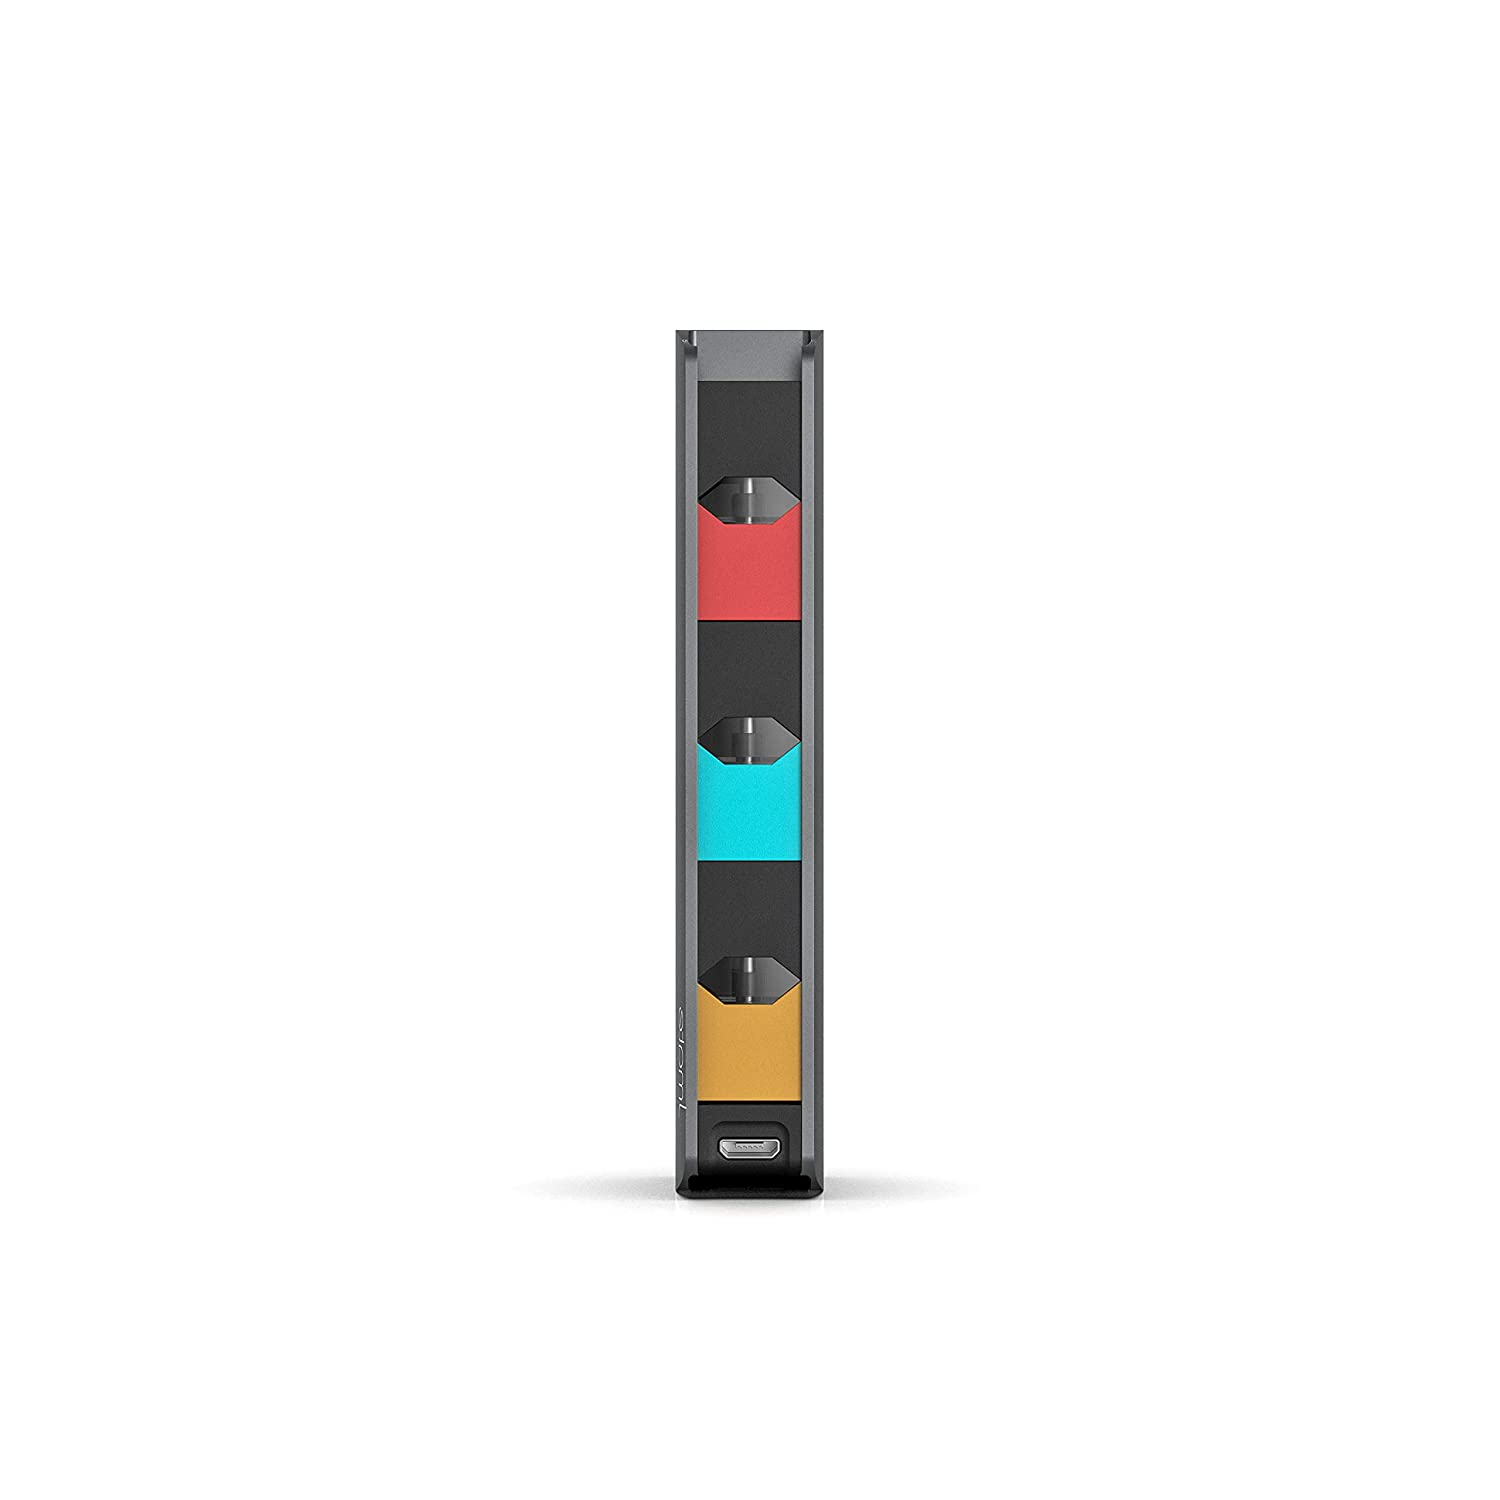 JUUL Starter Kit Holder With Magnetic Port Jmate P3 Juul Charger Case With Space For 3 Pods 800 mAh Portable Battery Charger Power Bank For Charging On The Go